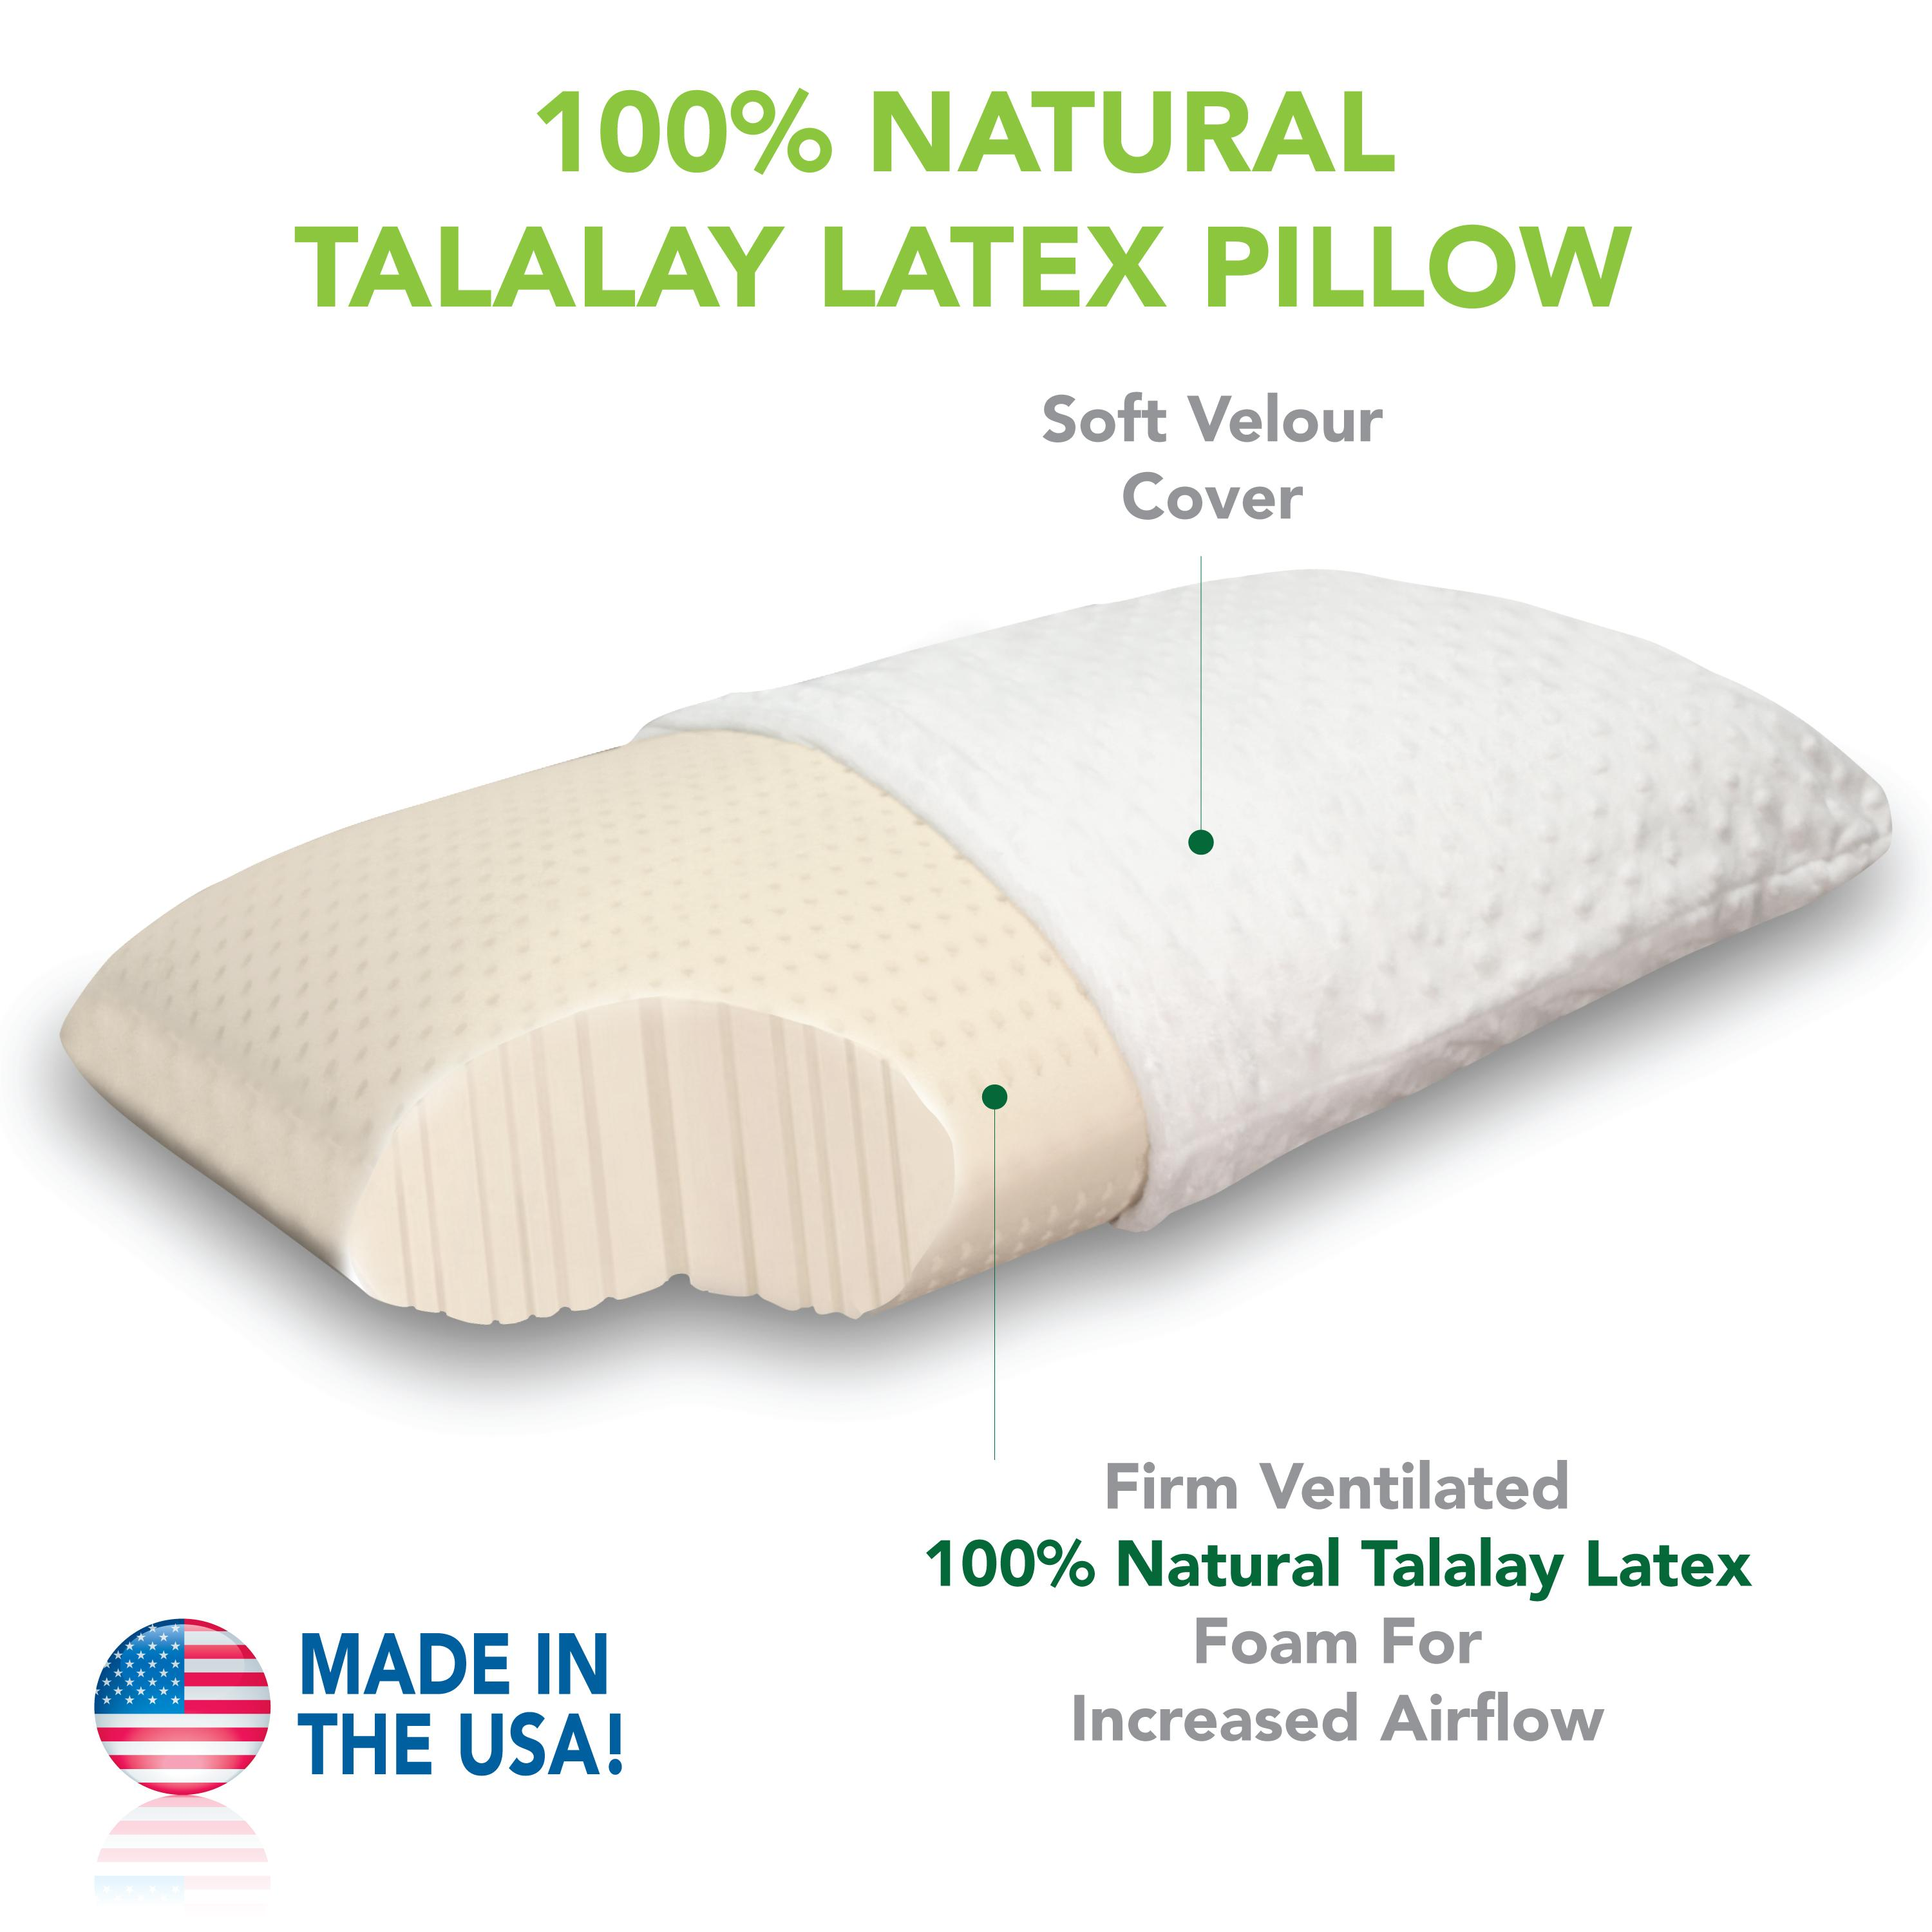 latex pillows talalay firm